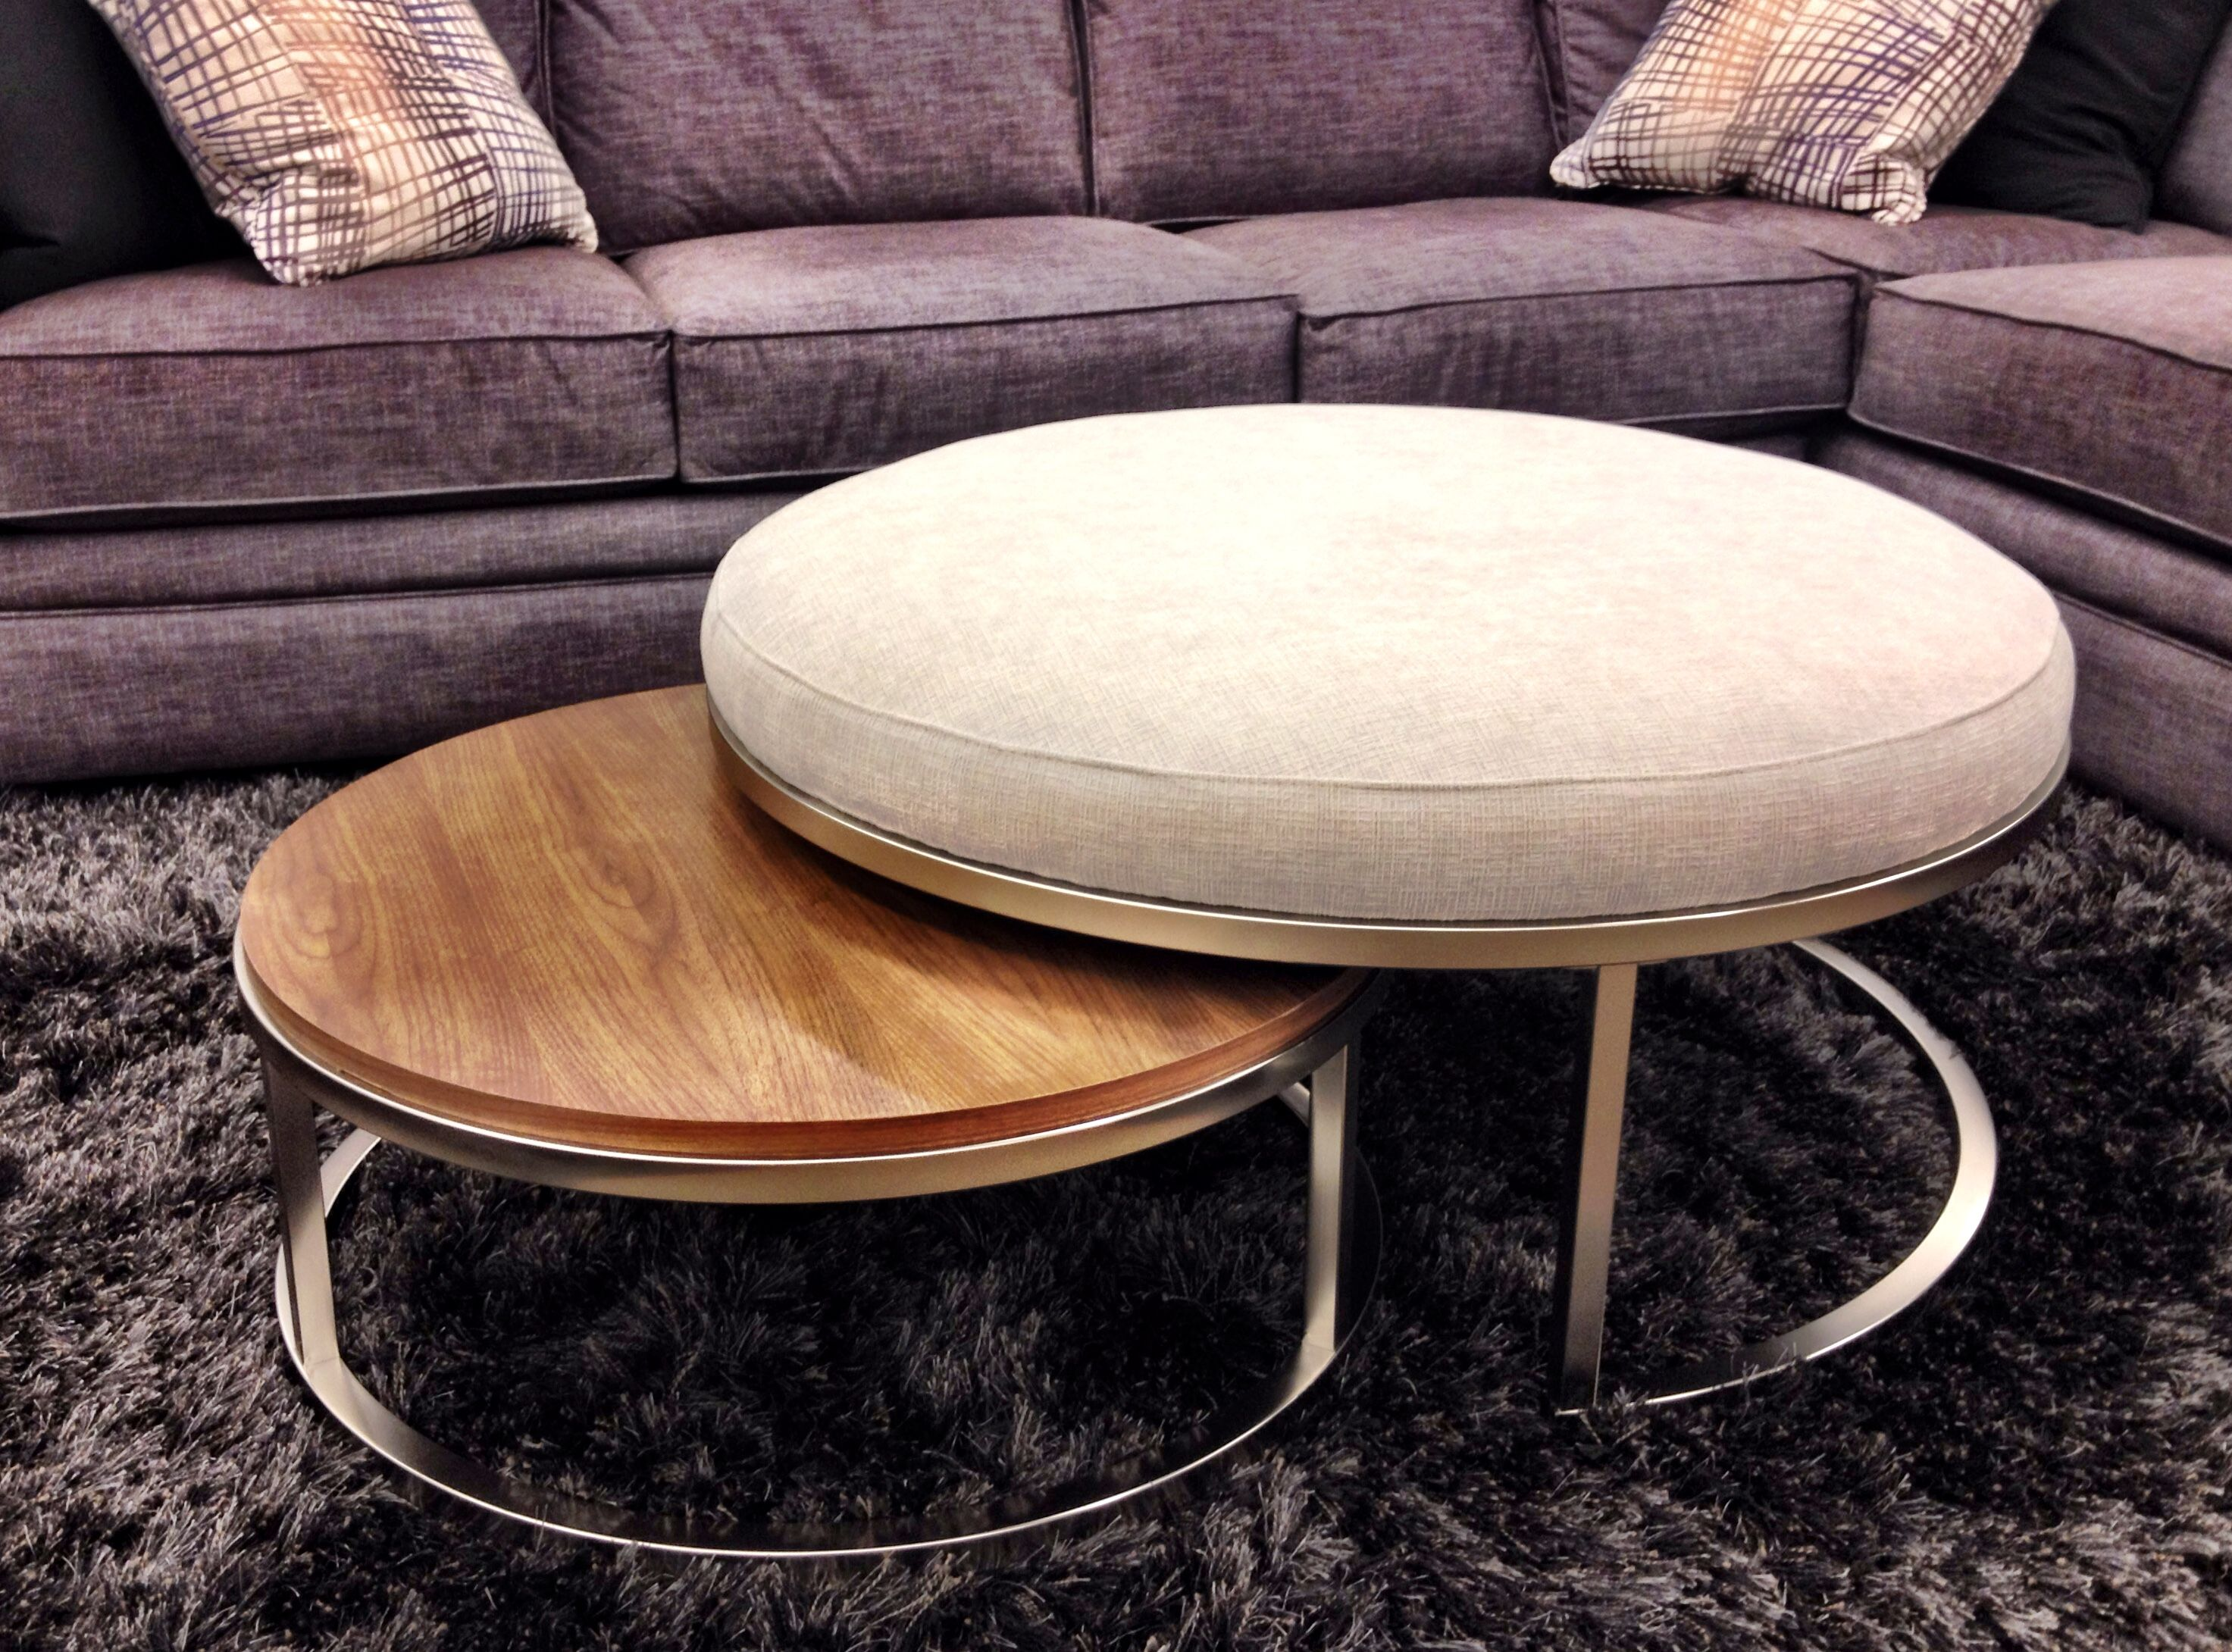 The Best Of Both Worlds Set Of 2 Nesting Coffee Table Ottoman